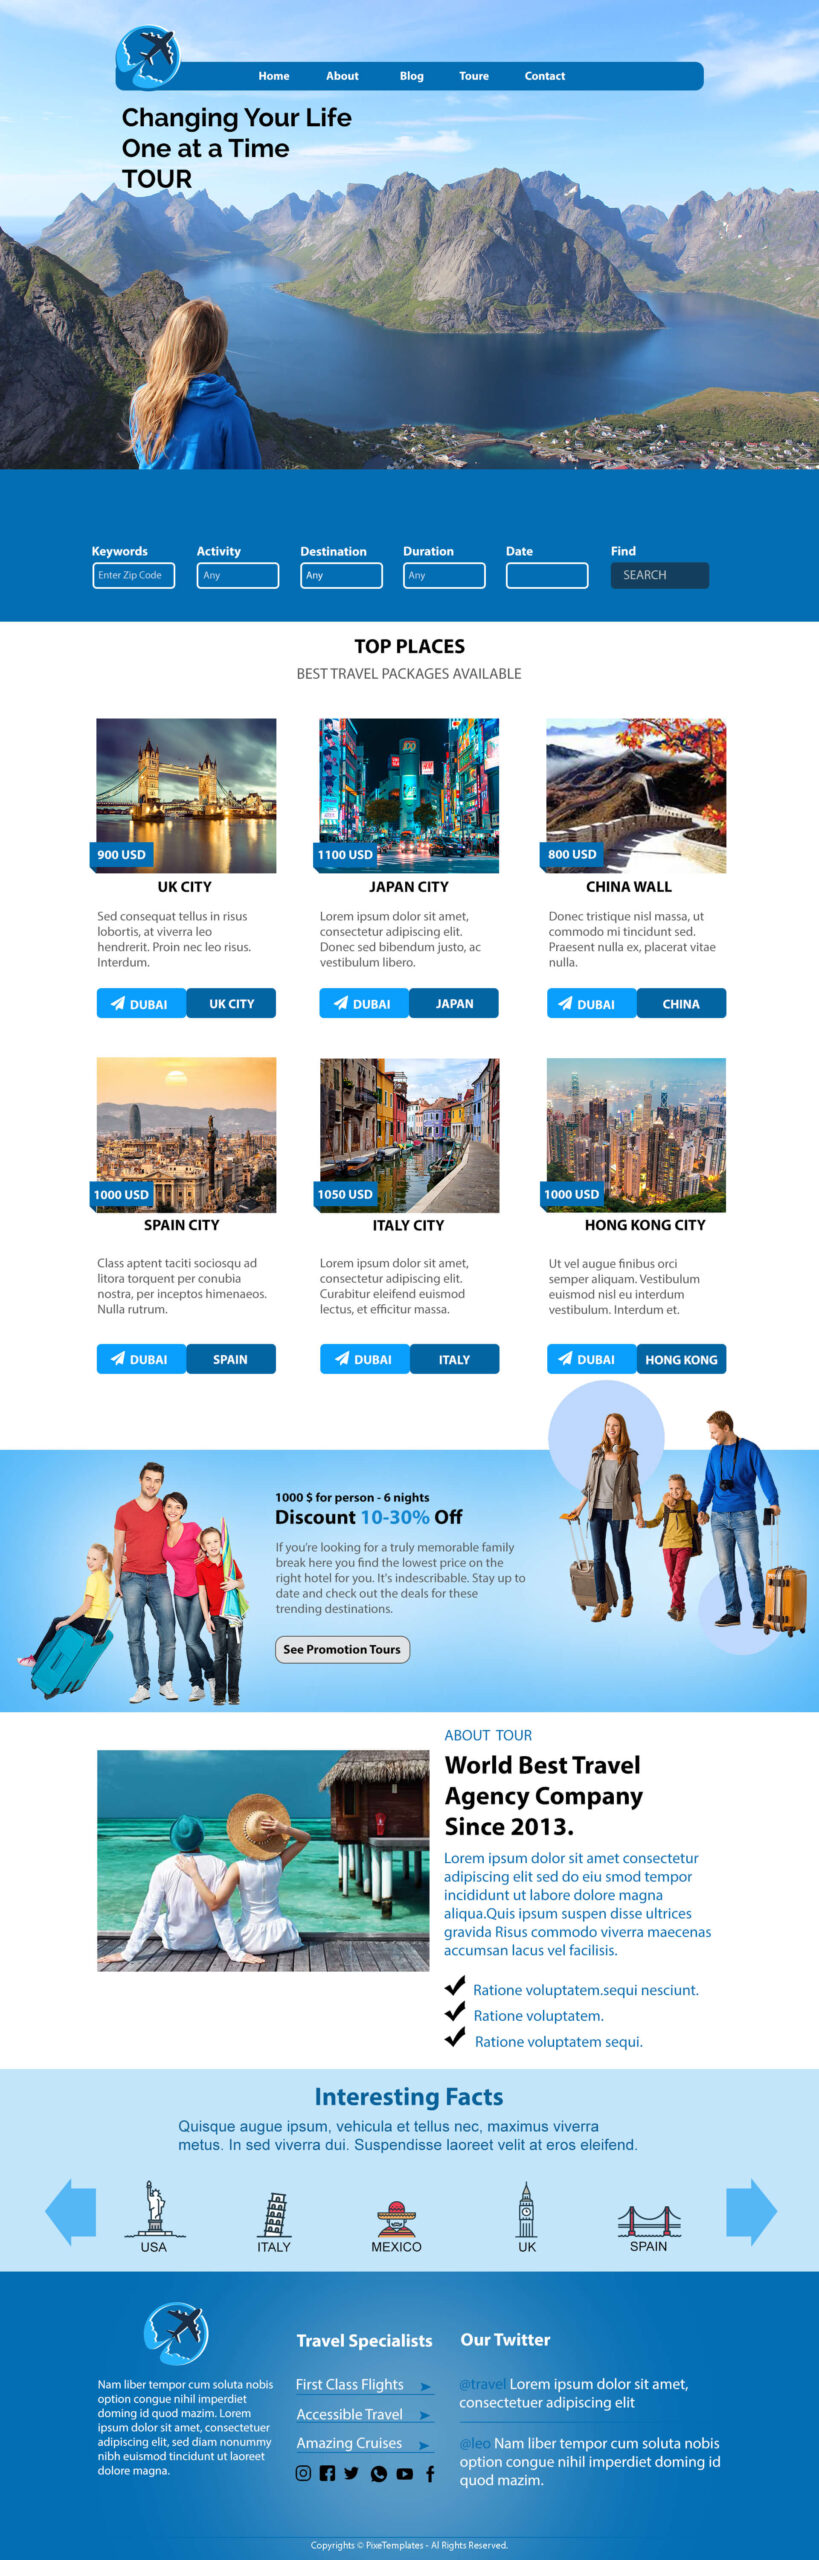 Change your Life Tour & Hotel Web Interface